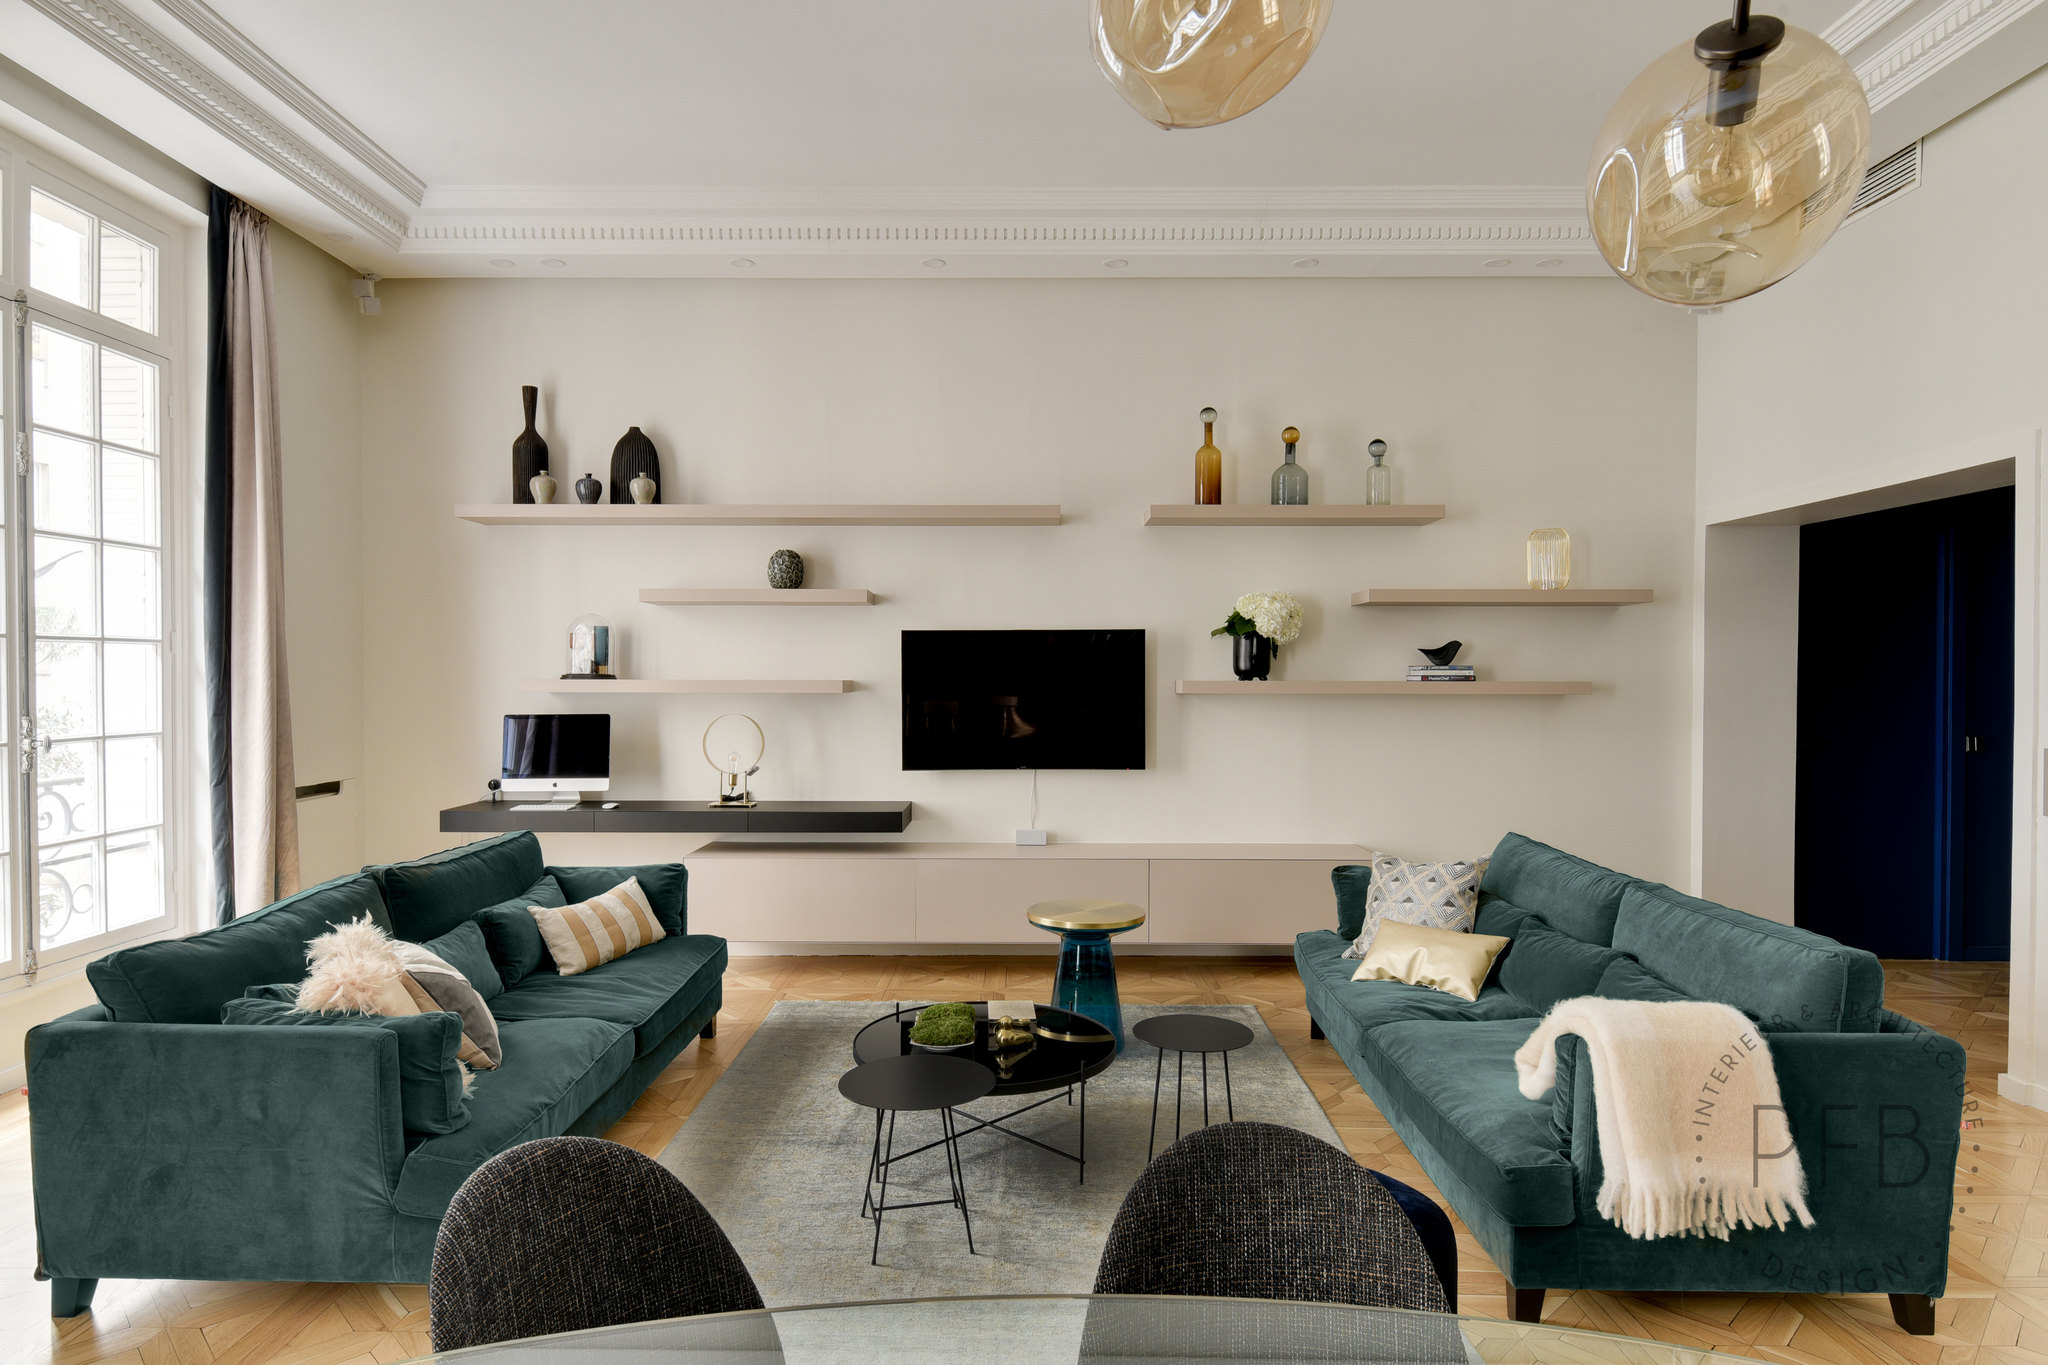 PFBDESIGN-{Artjan}-{appartement}-11.jpg